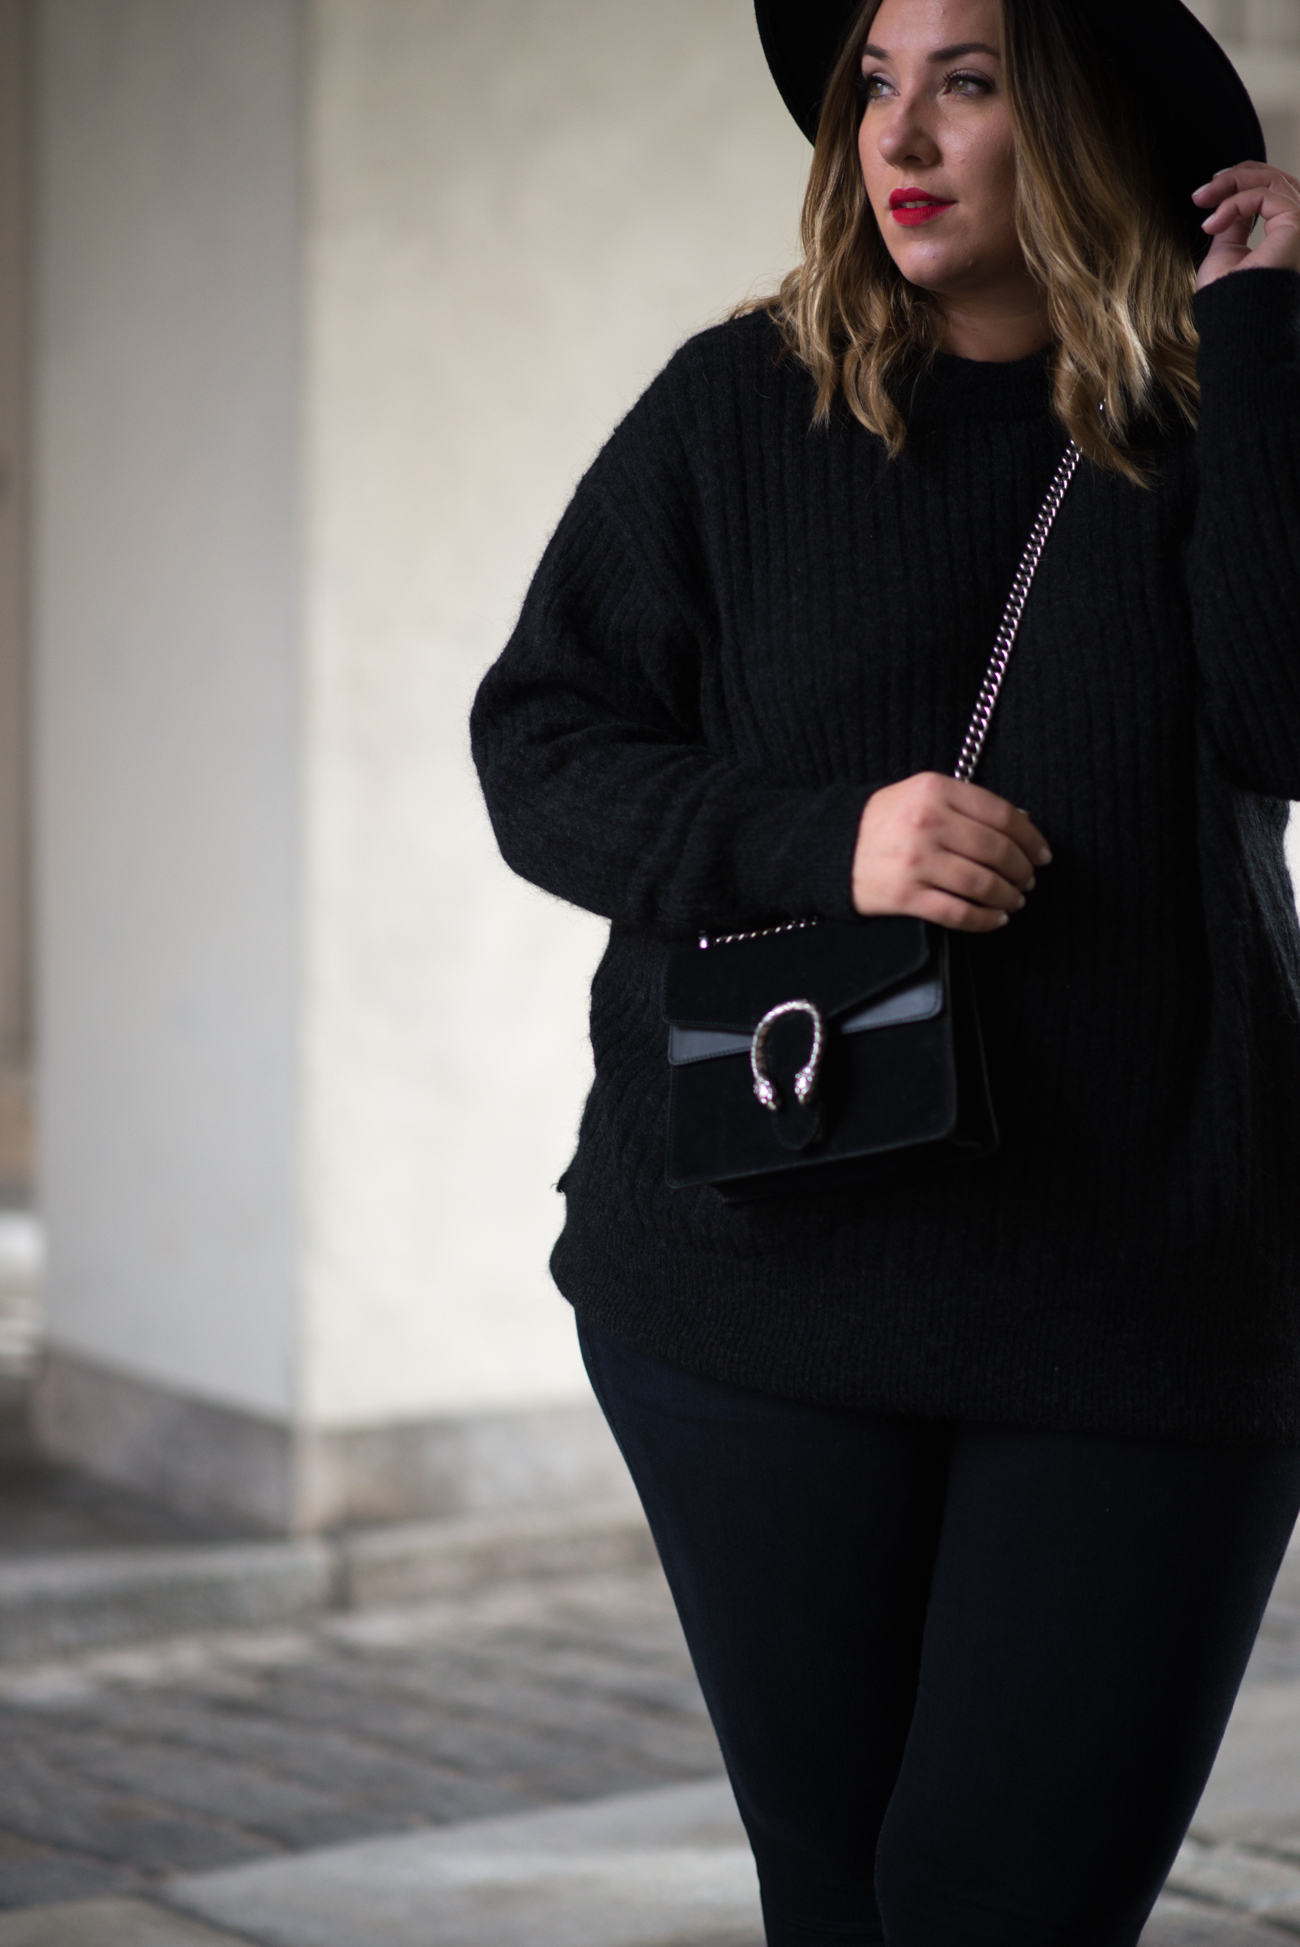 the-skinny-and-the-curvy-one_ms-wunderbar_curvy_plussize-blogger_plus-size-blog-deutschland_curve-blogger_all-black_gucci-dionysus_gucci-dionysus-black-velour-20-von-27